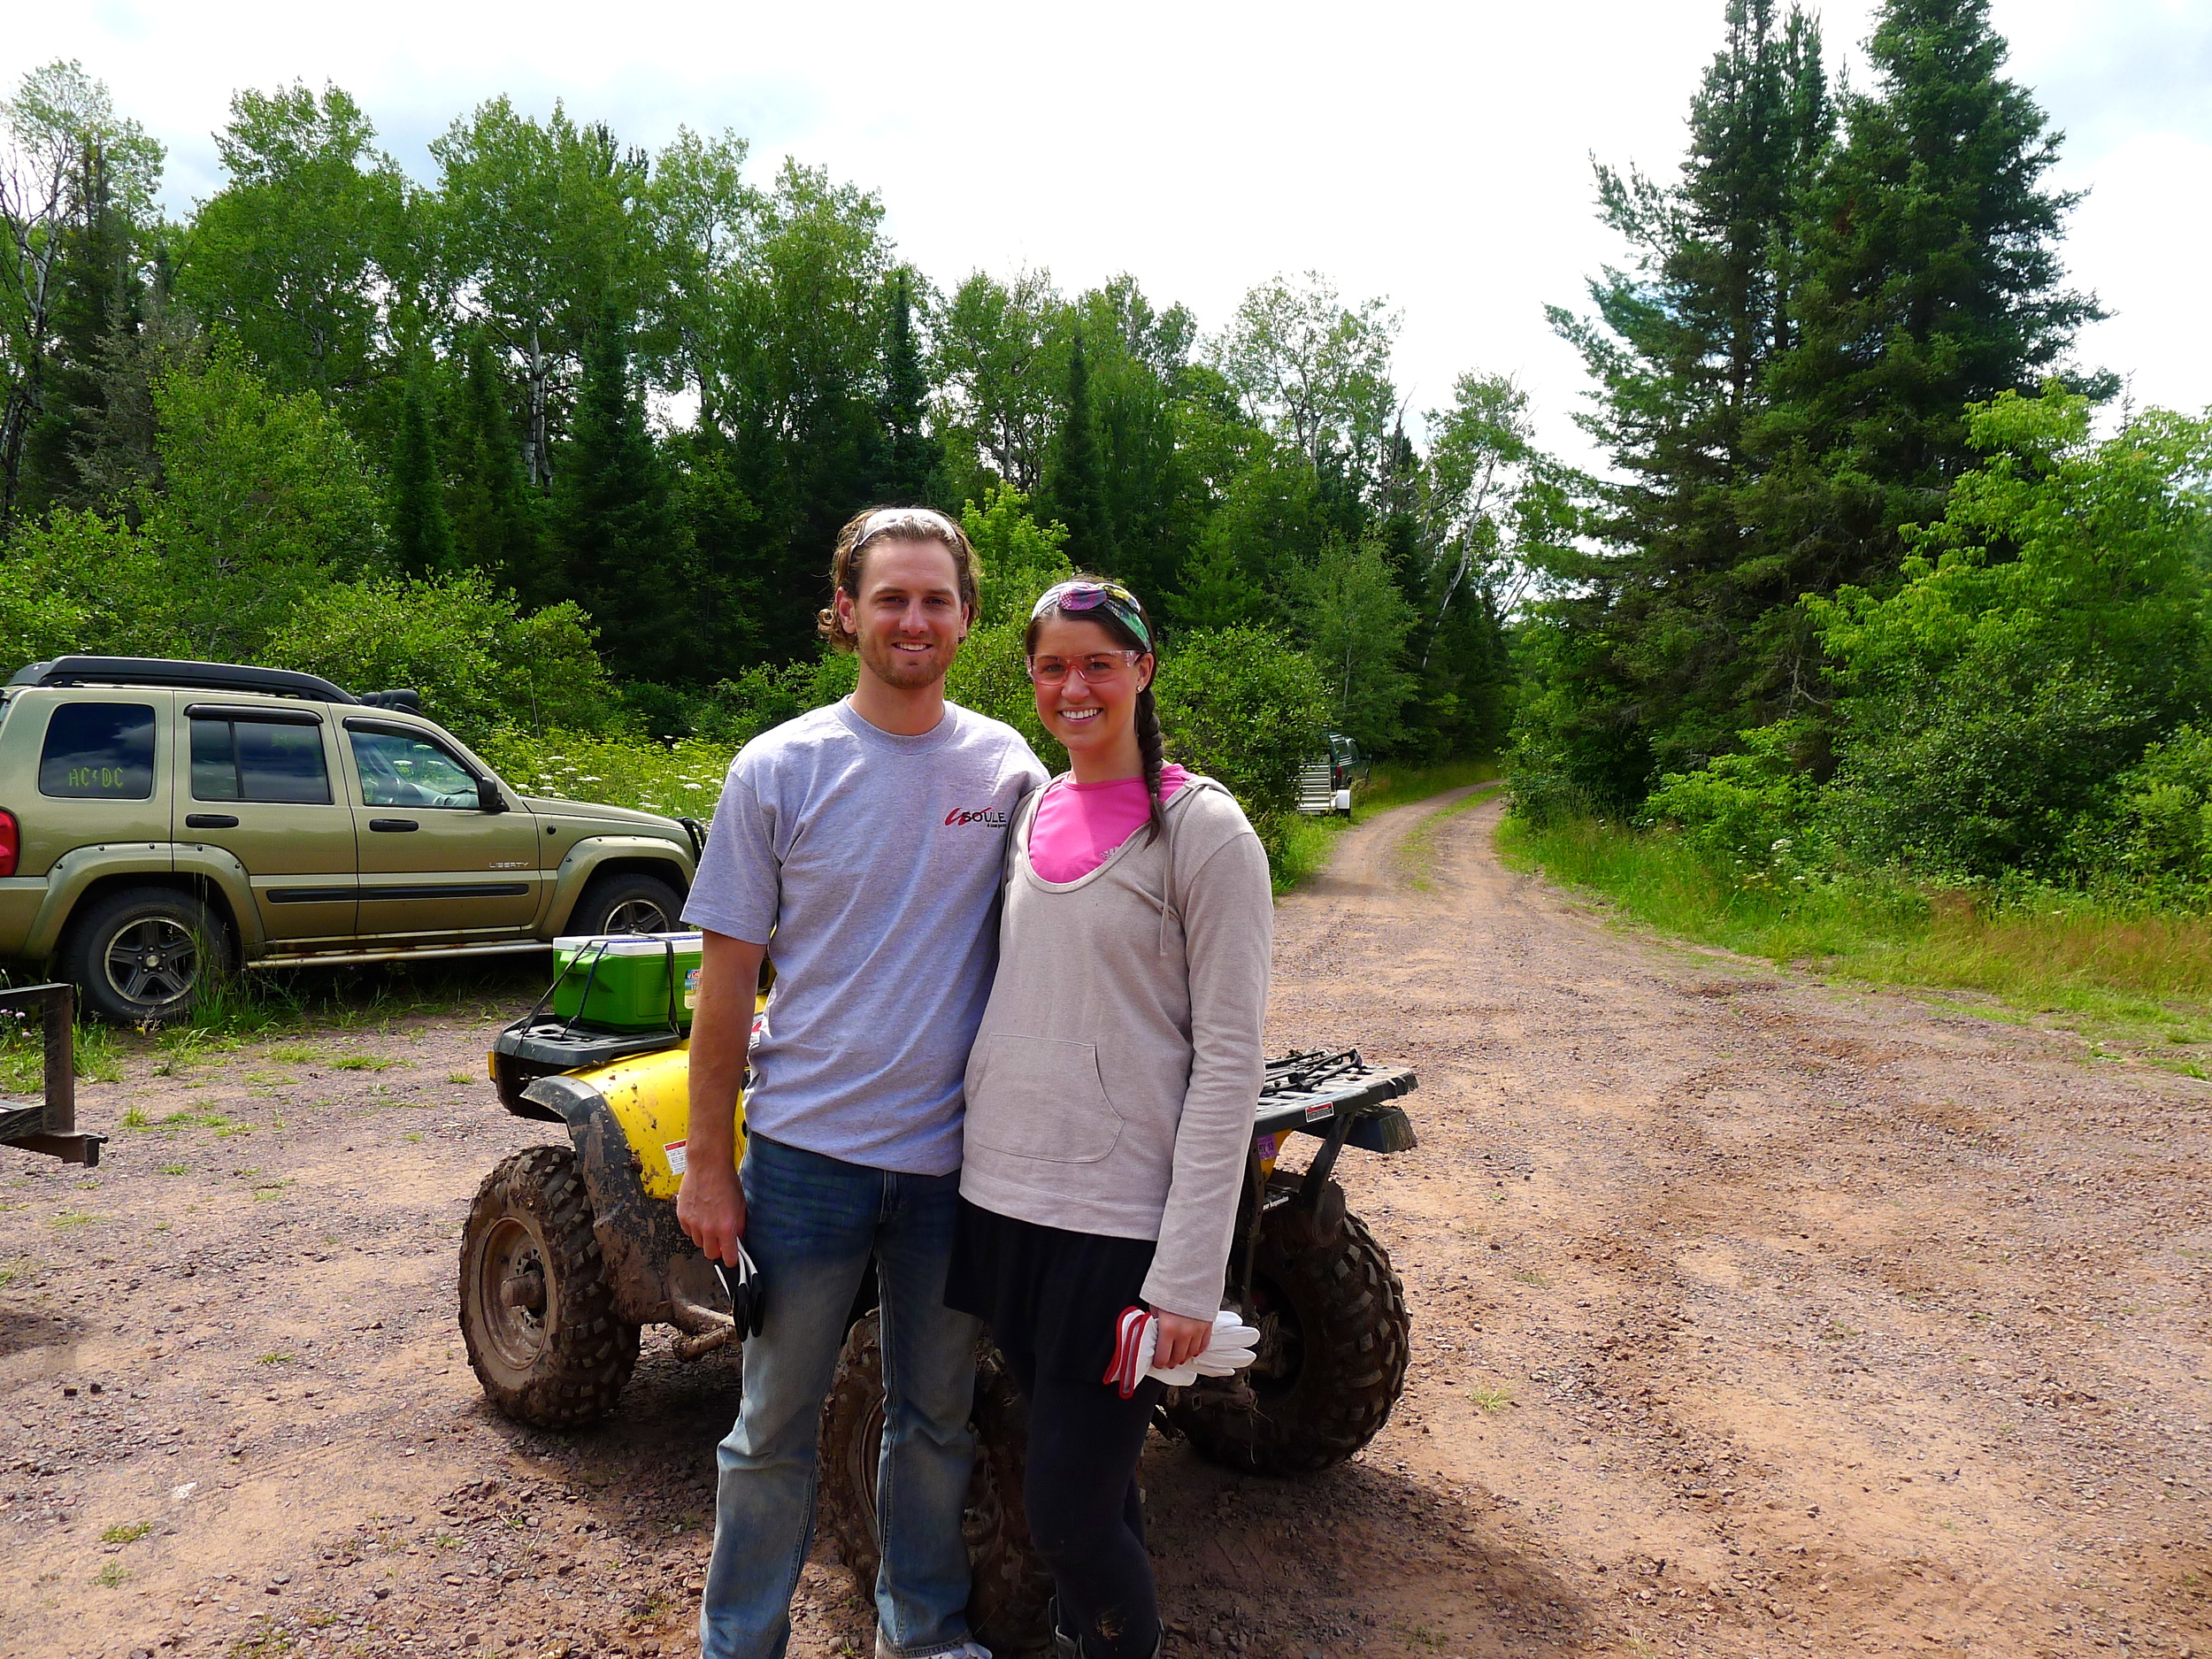 TRAIL RIDING THE PORCUPINE MOUNTAINS